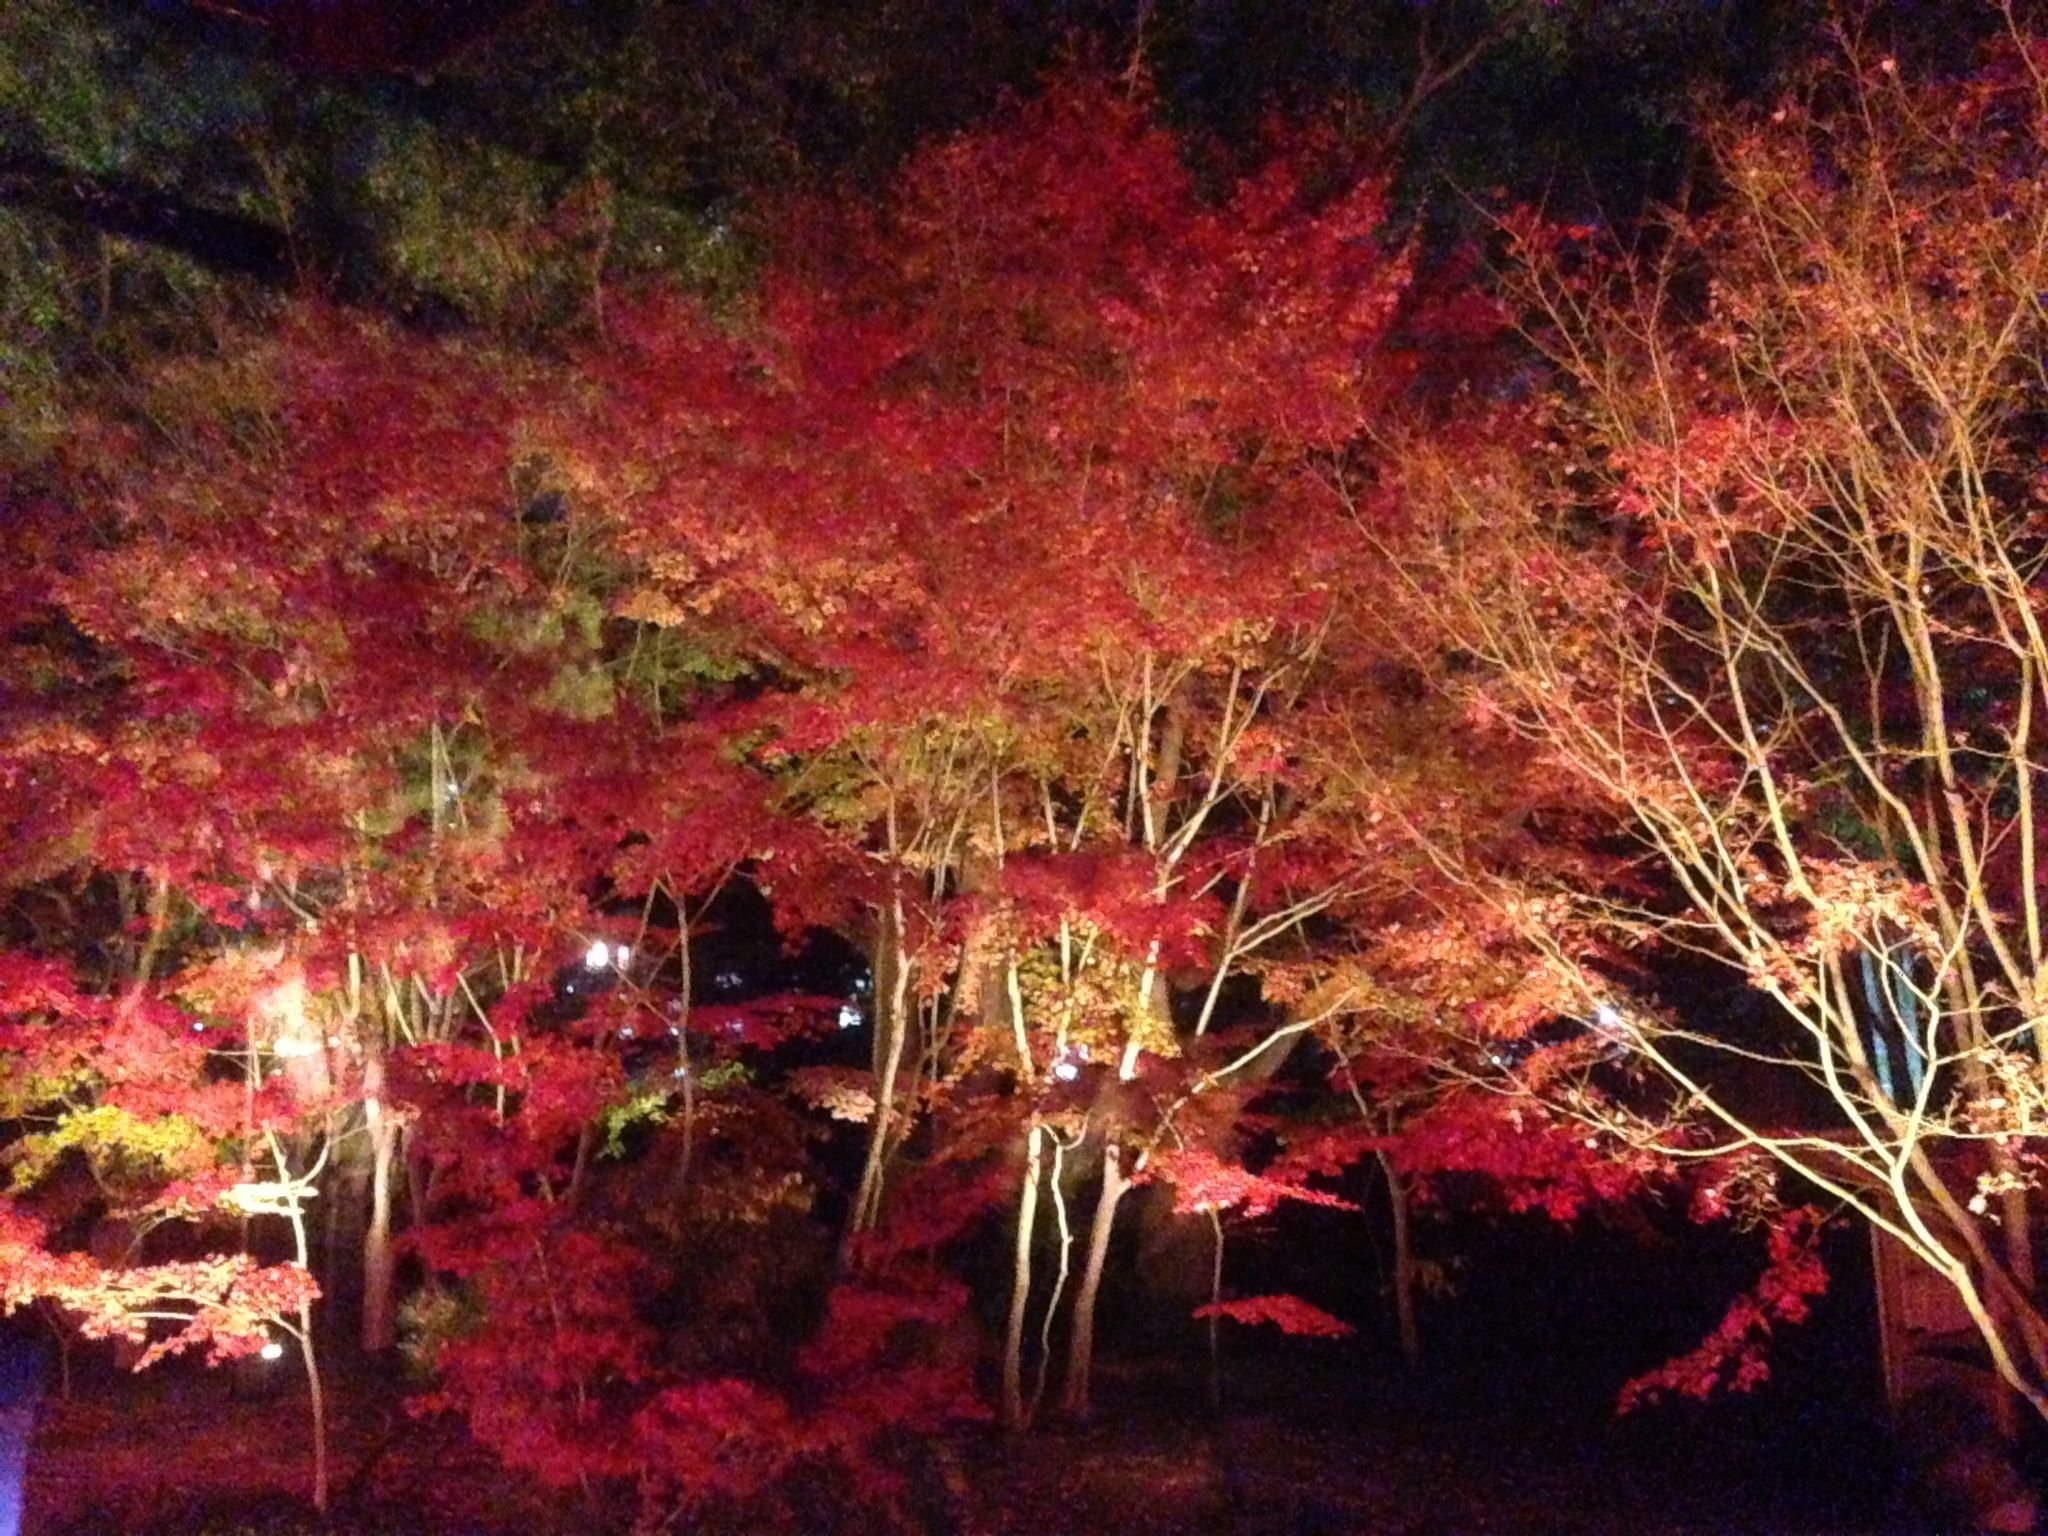 Autumn 2012 in Japan